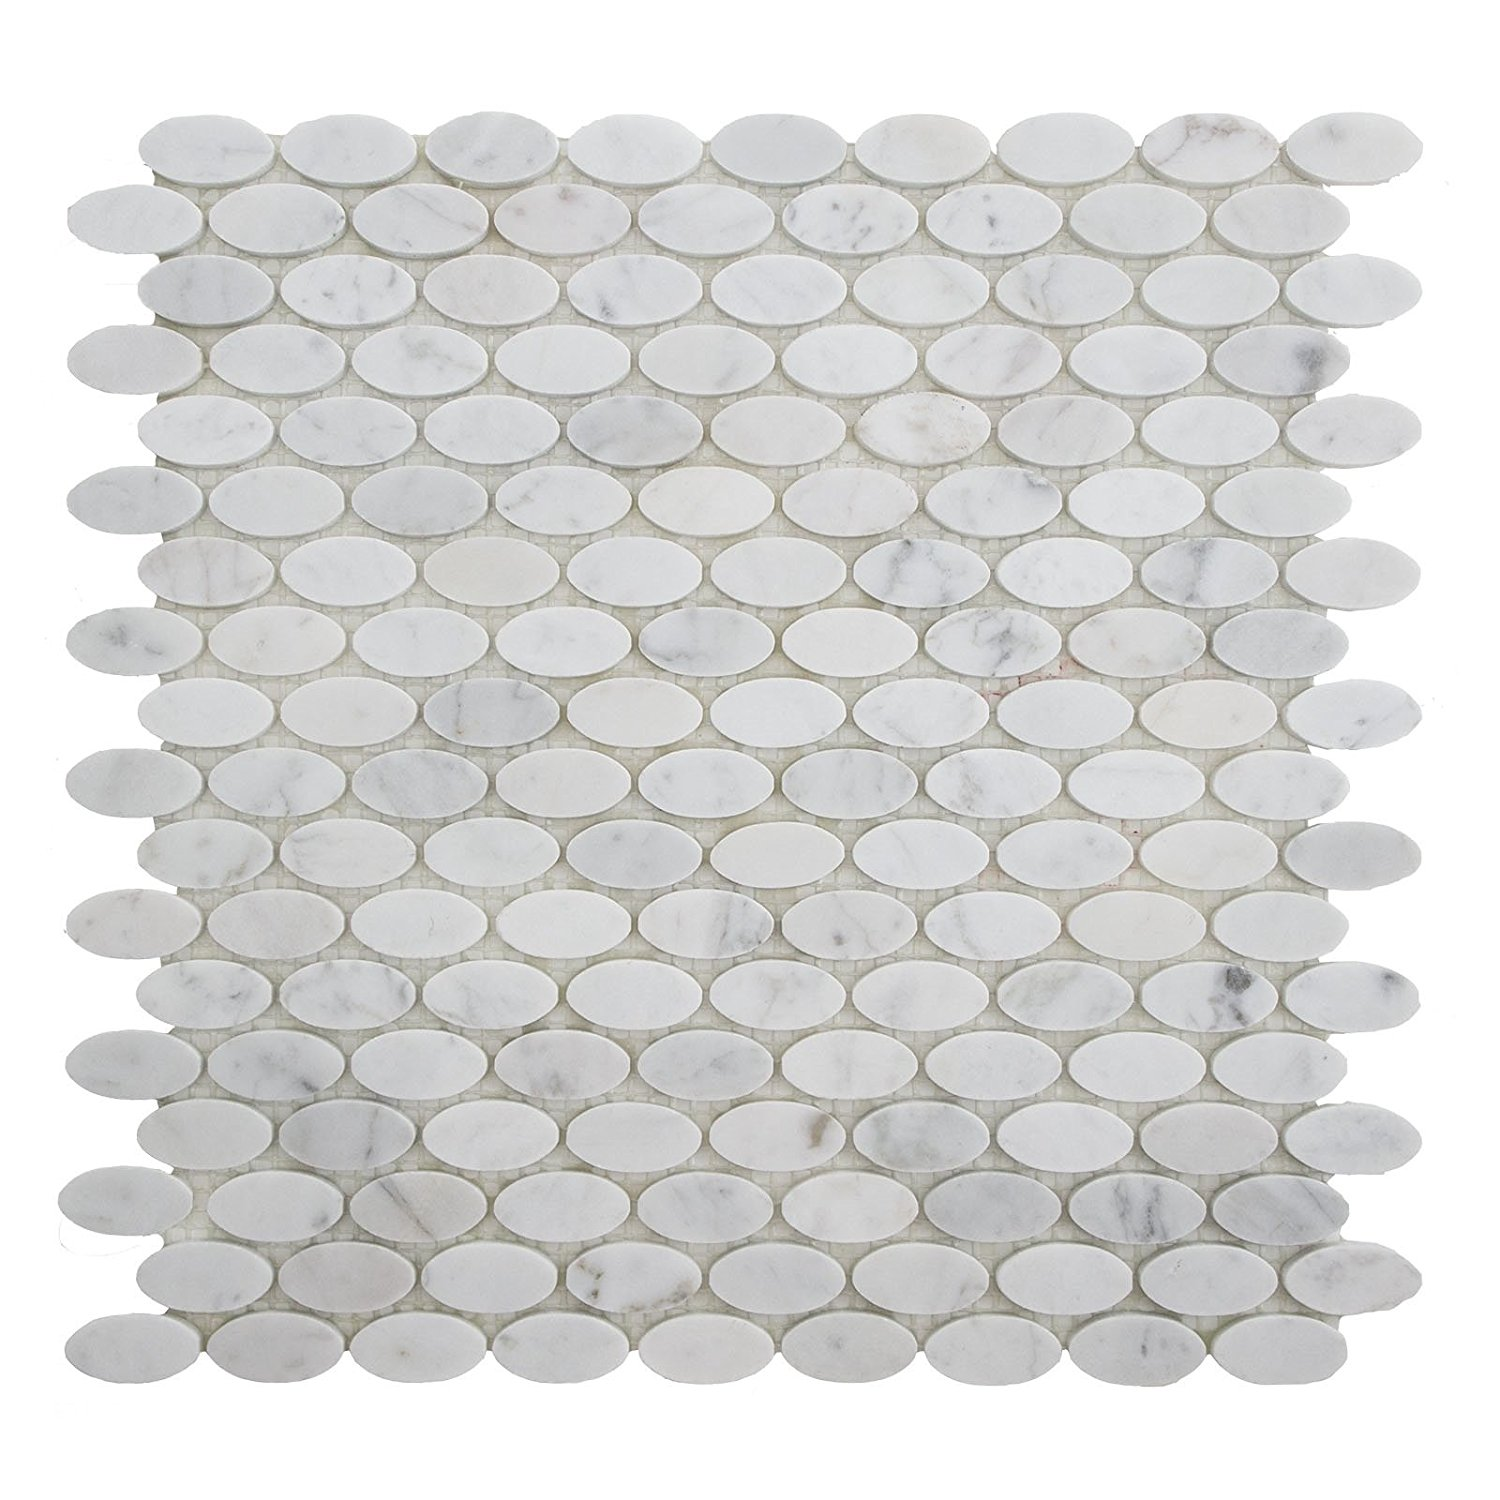 "Carrara White Marble Mosaic Tile, CWMM54OVL-H, 1-1/4""X5/8"" Oval, 12""X11-1/2""X3/8"", Honed (Sample (4""X3-1/2""))"